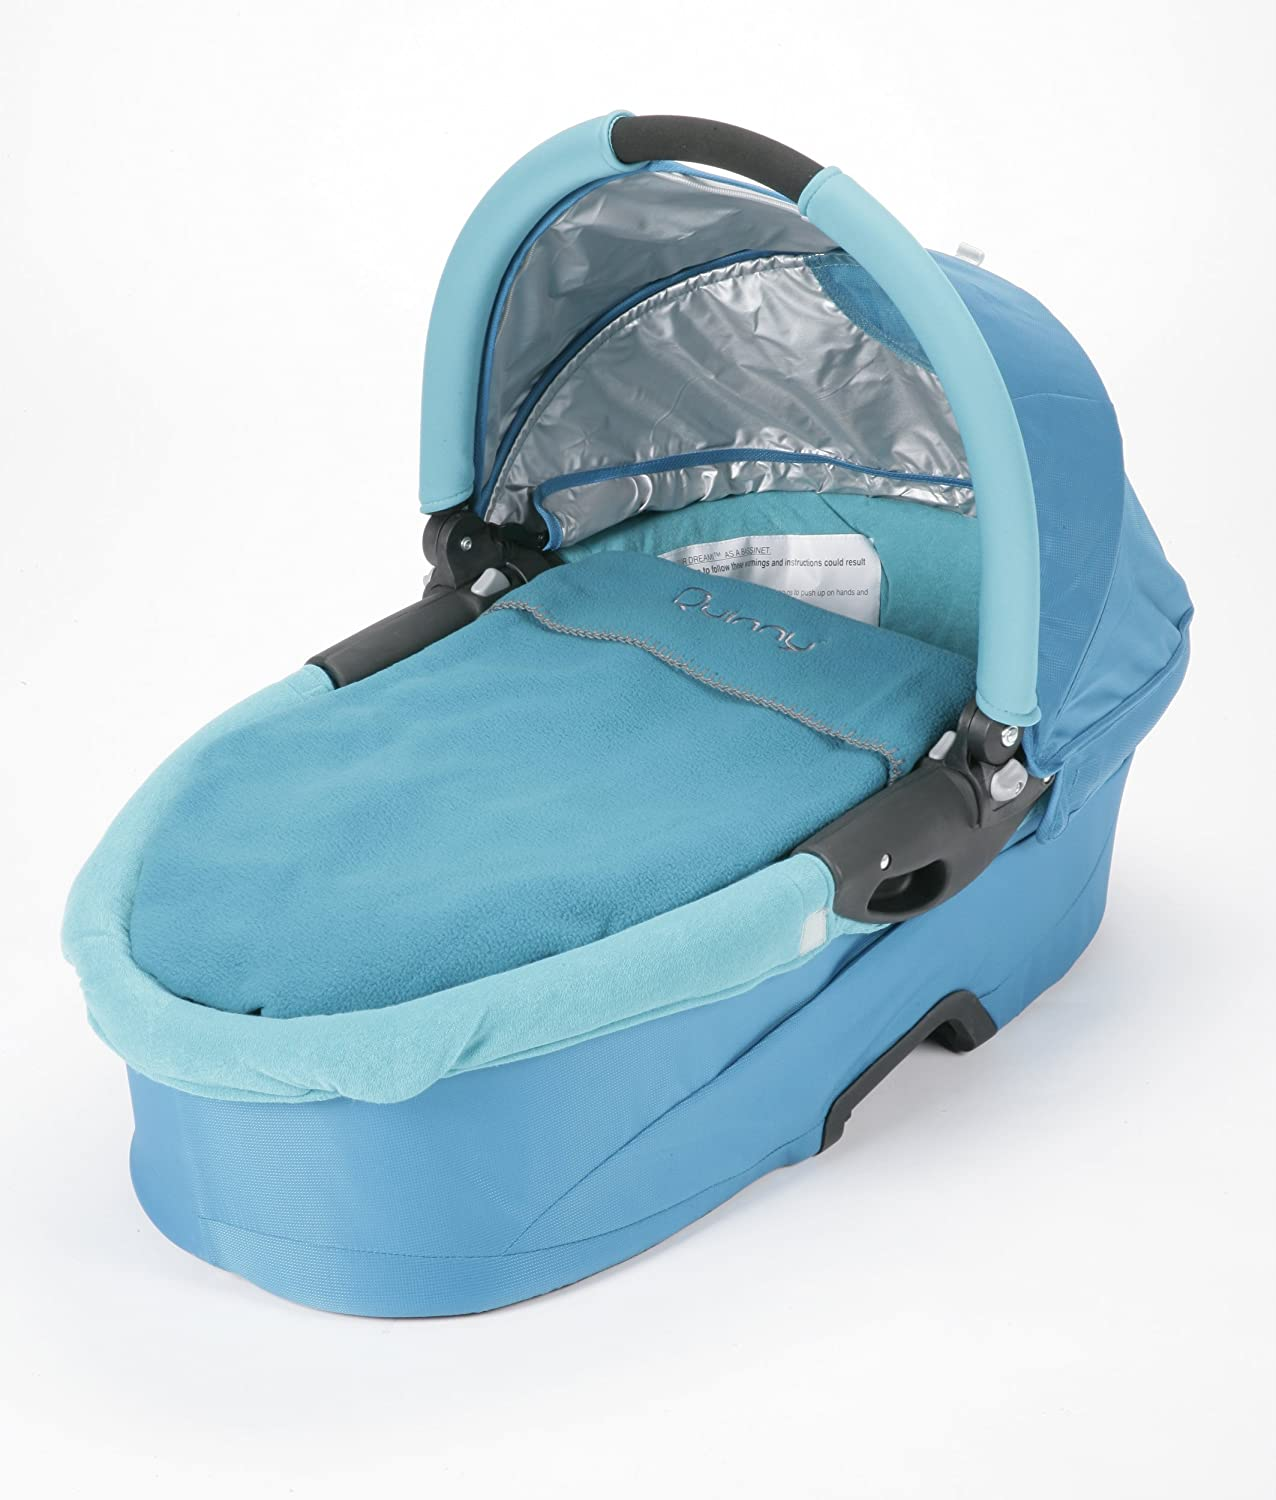 Quinny Dreami Buzz Bassinet Capri